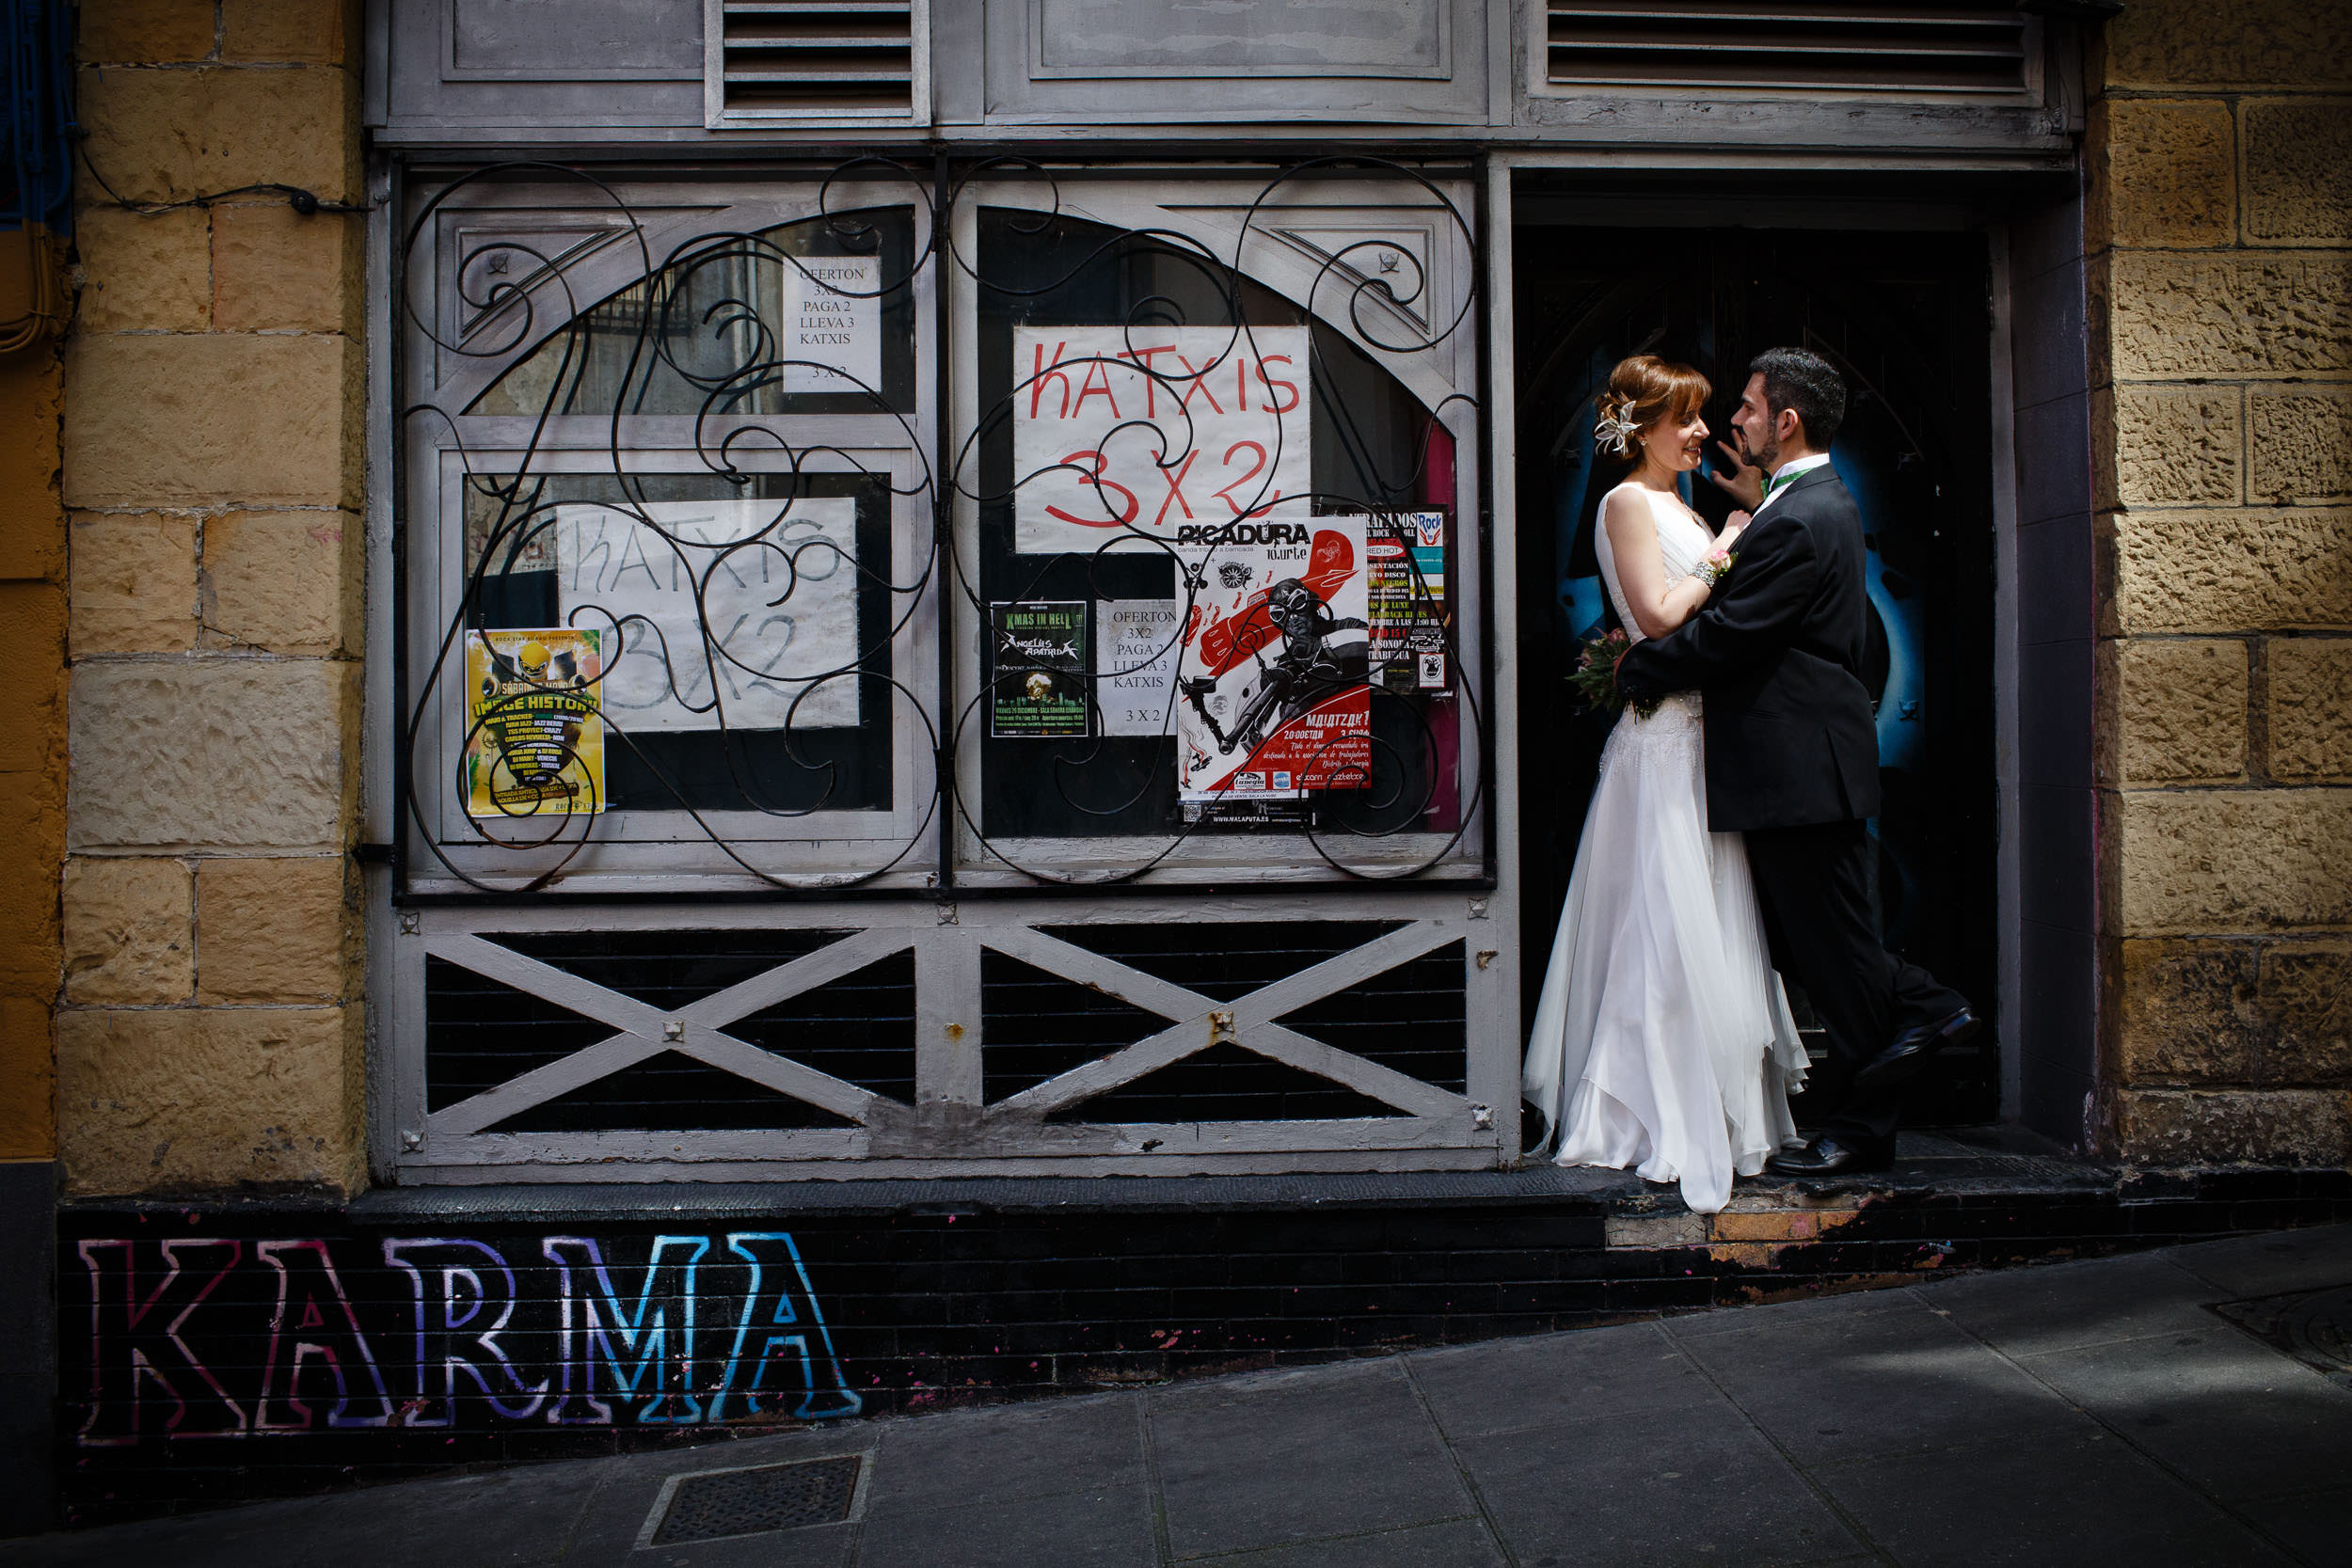 Engagement photography in Portugalete, Basque Country, Spain - James Sturcke Photographer | sturcke.org